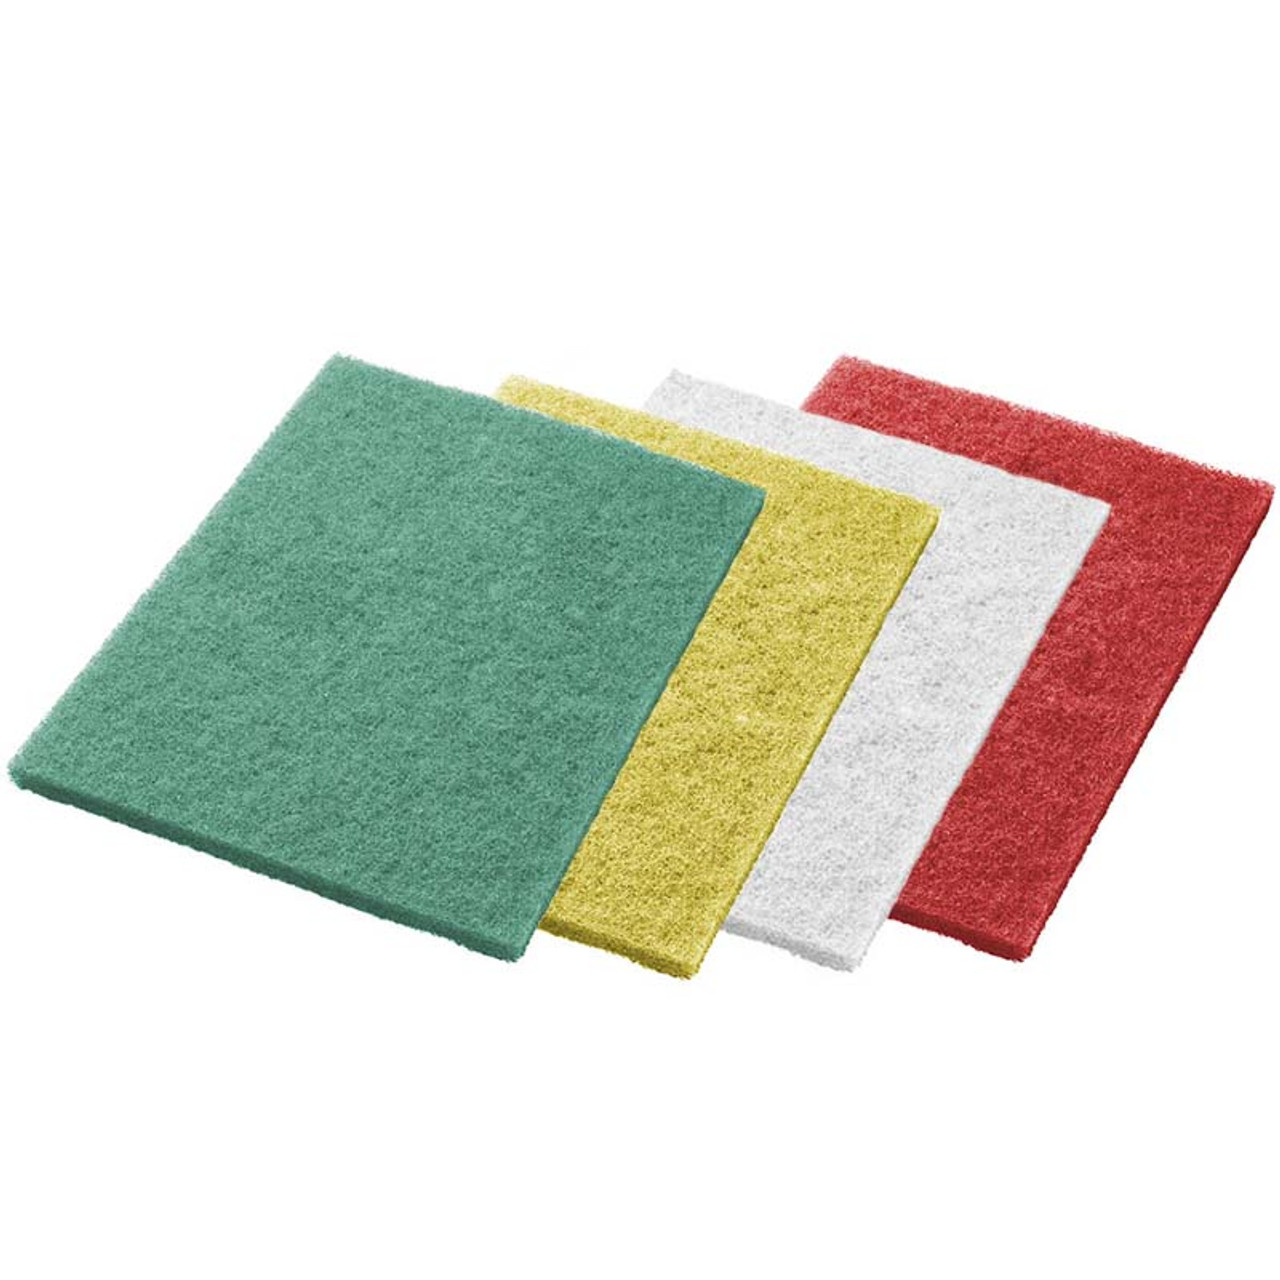 """Diamond Pads 27/"""" Twister Red 400 Grit for Concrete Grinding 2 pads per//cs"""